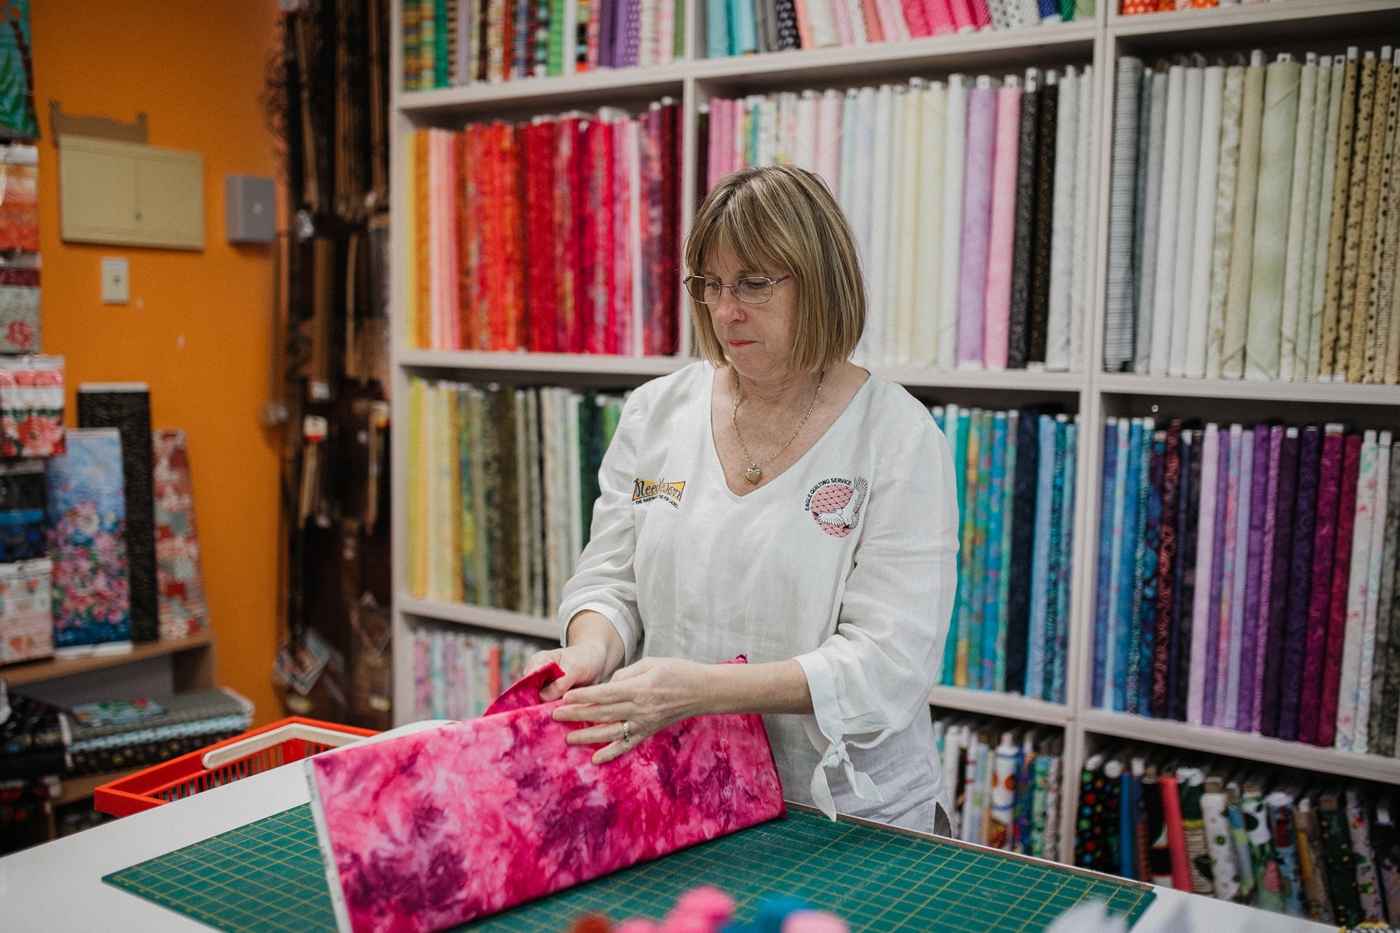 Preparing bright pink fabric sewing material with rows of fabric swatches in background